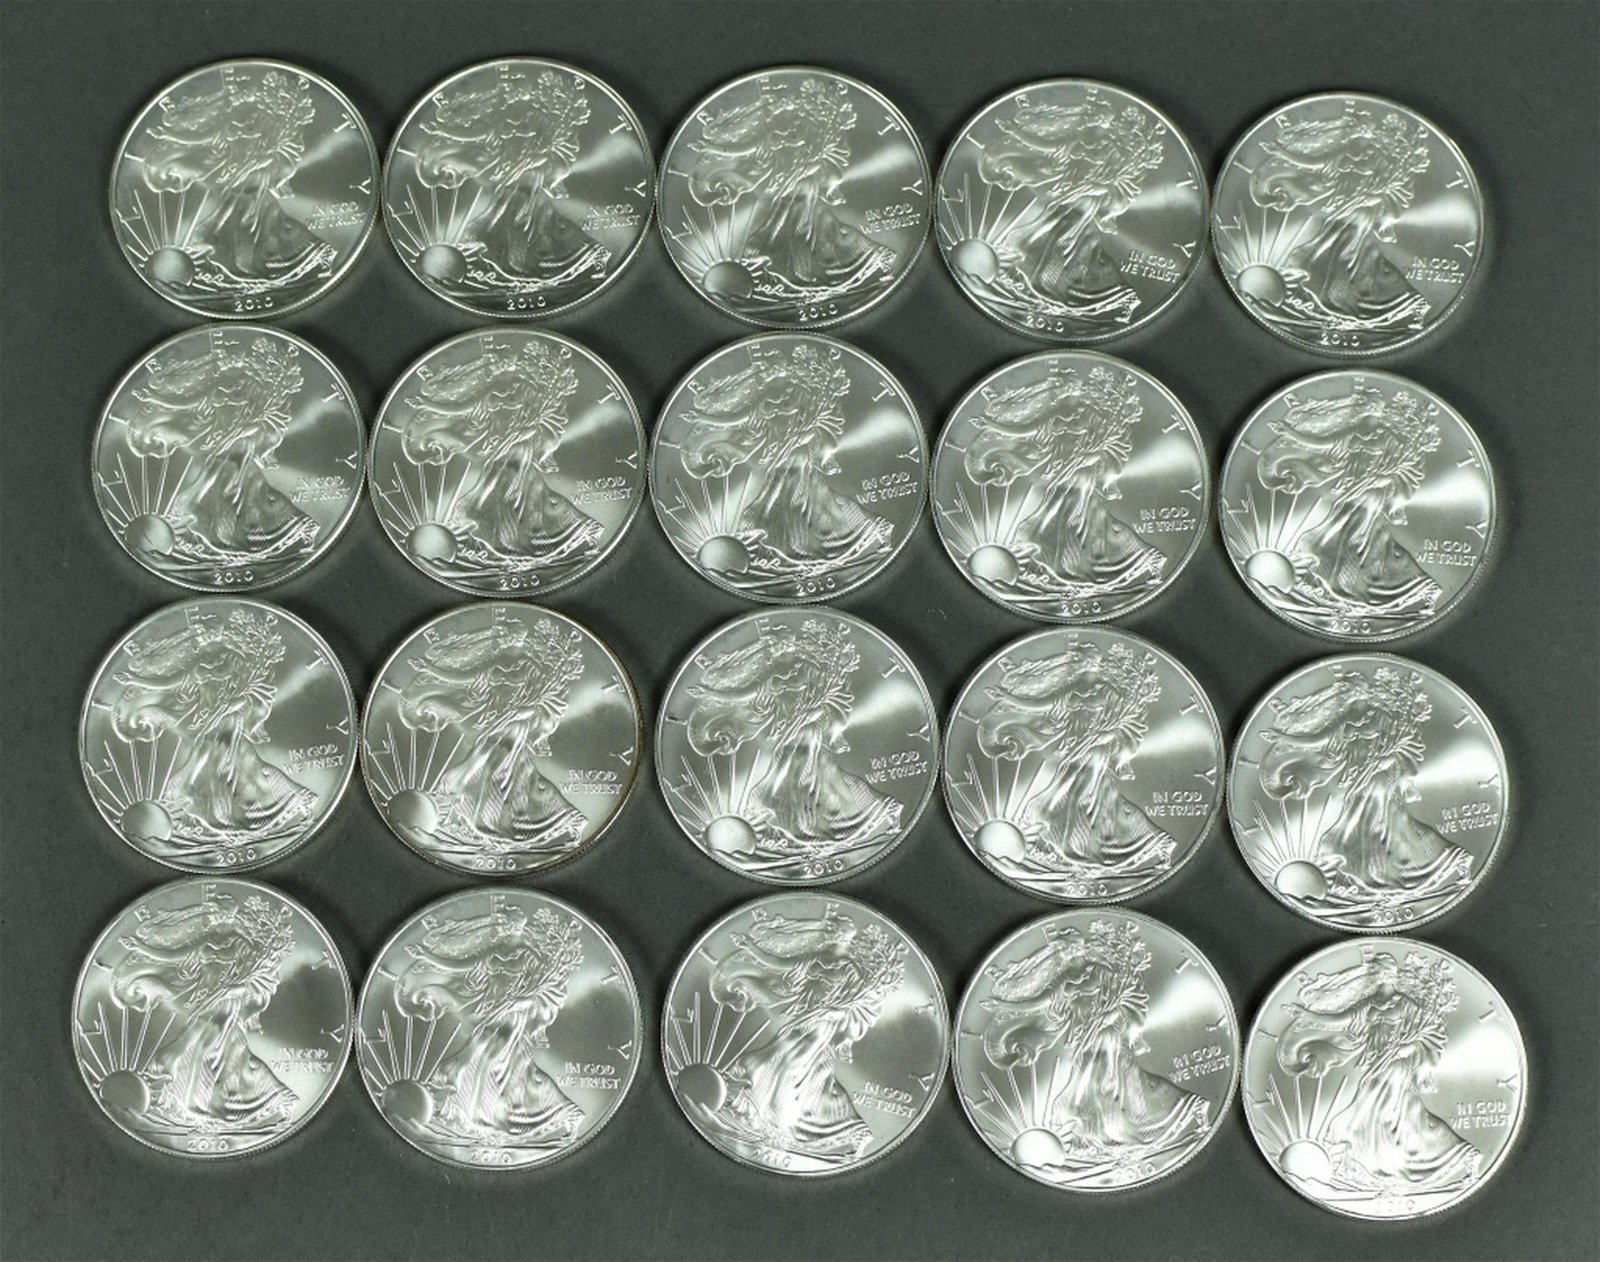 Tube of 2010 Silver Eagles